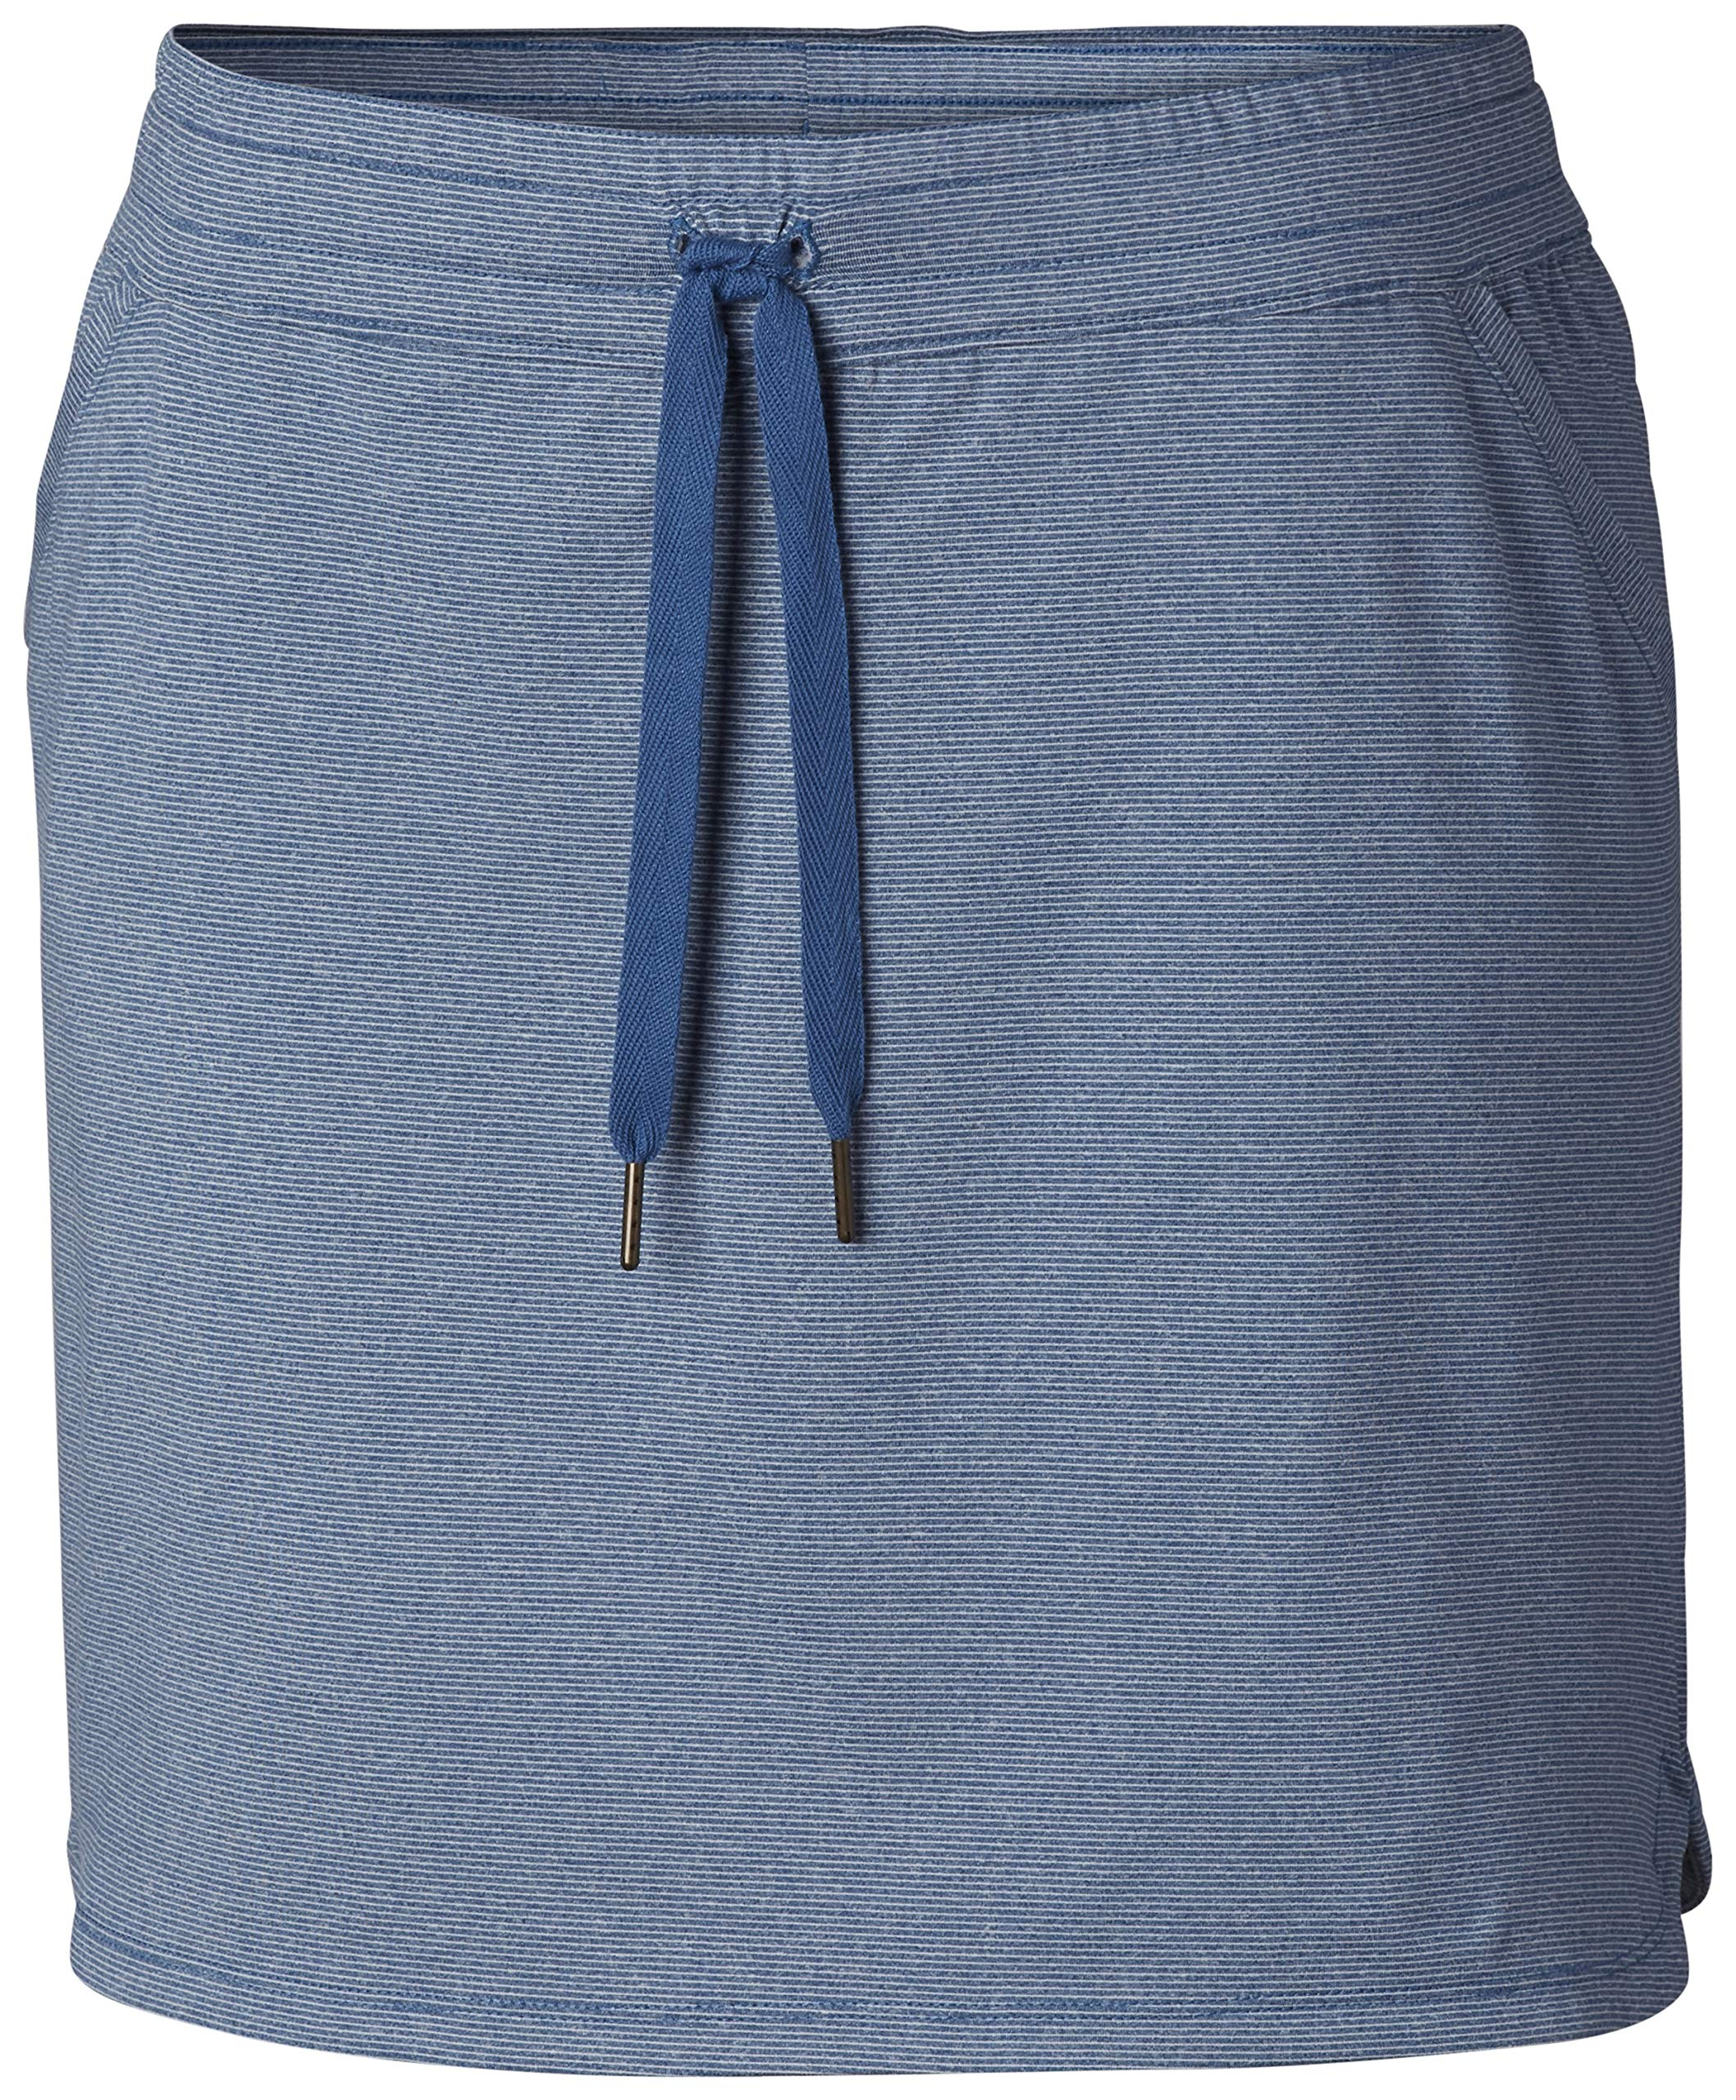 Columbia Women's Reel Relaxed Skirt, Impulse Blue, X-Small by Columbia